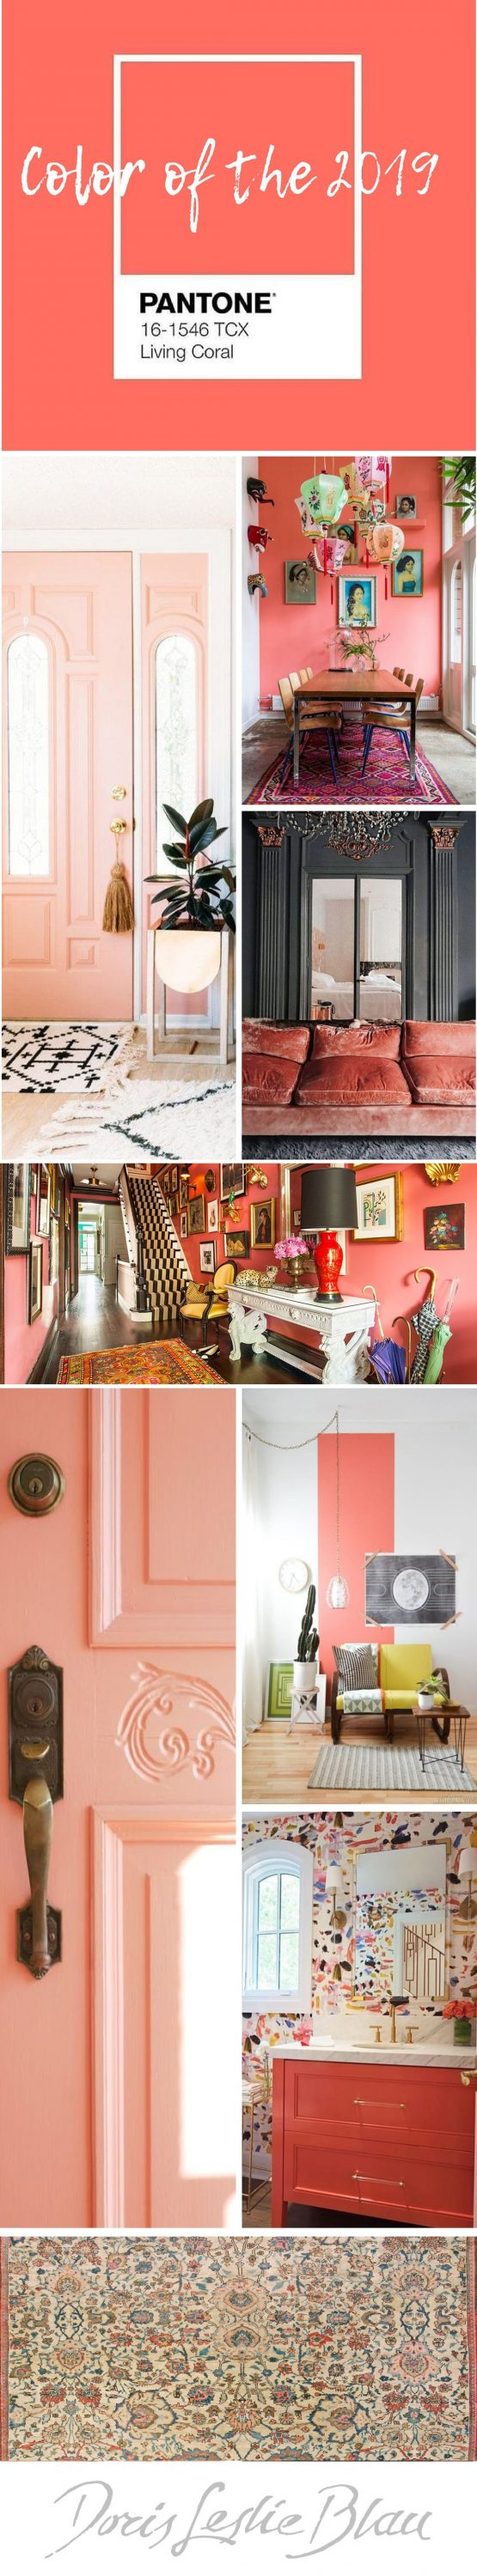 pantone living coral, 2019 interior decor trends-min